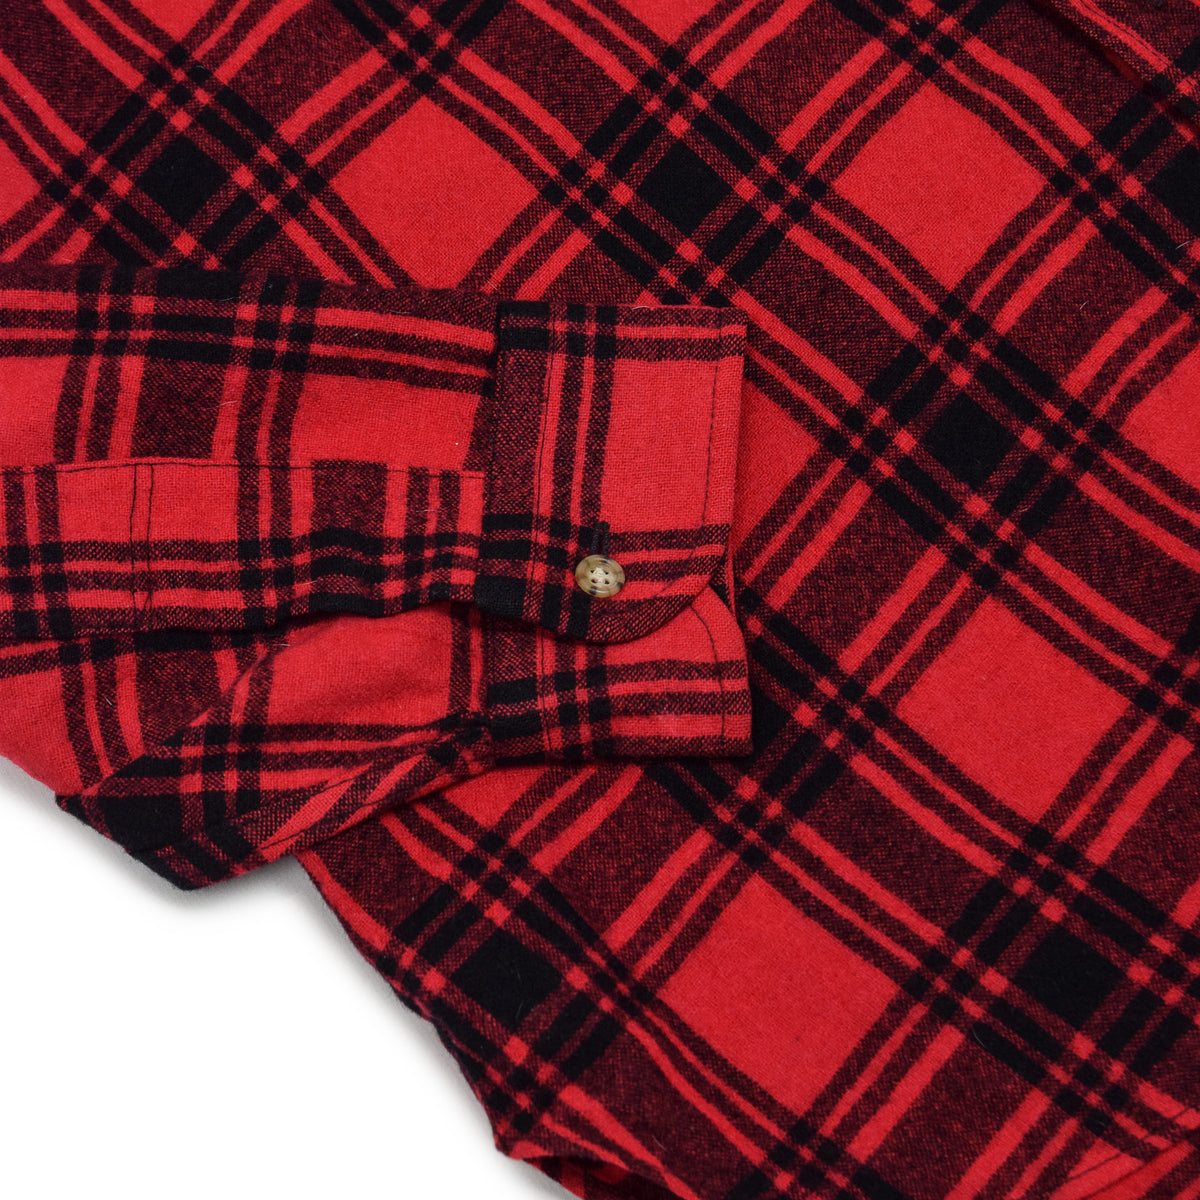 Vintage Pendleton Plaid Long Sleeve Made In USA Virgin Wool Check Shirt XL cuff